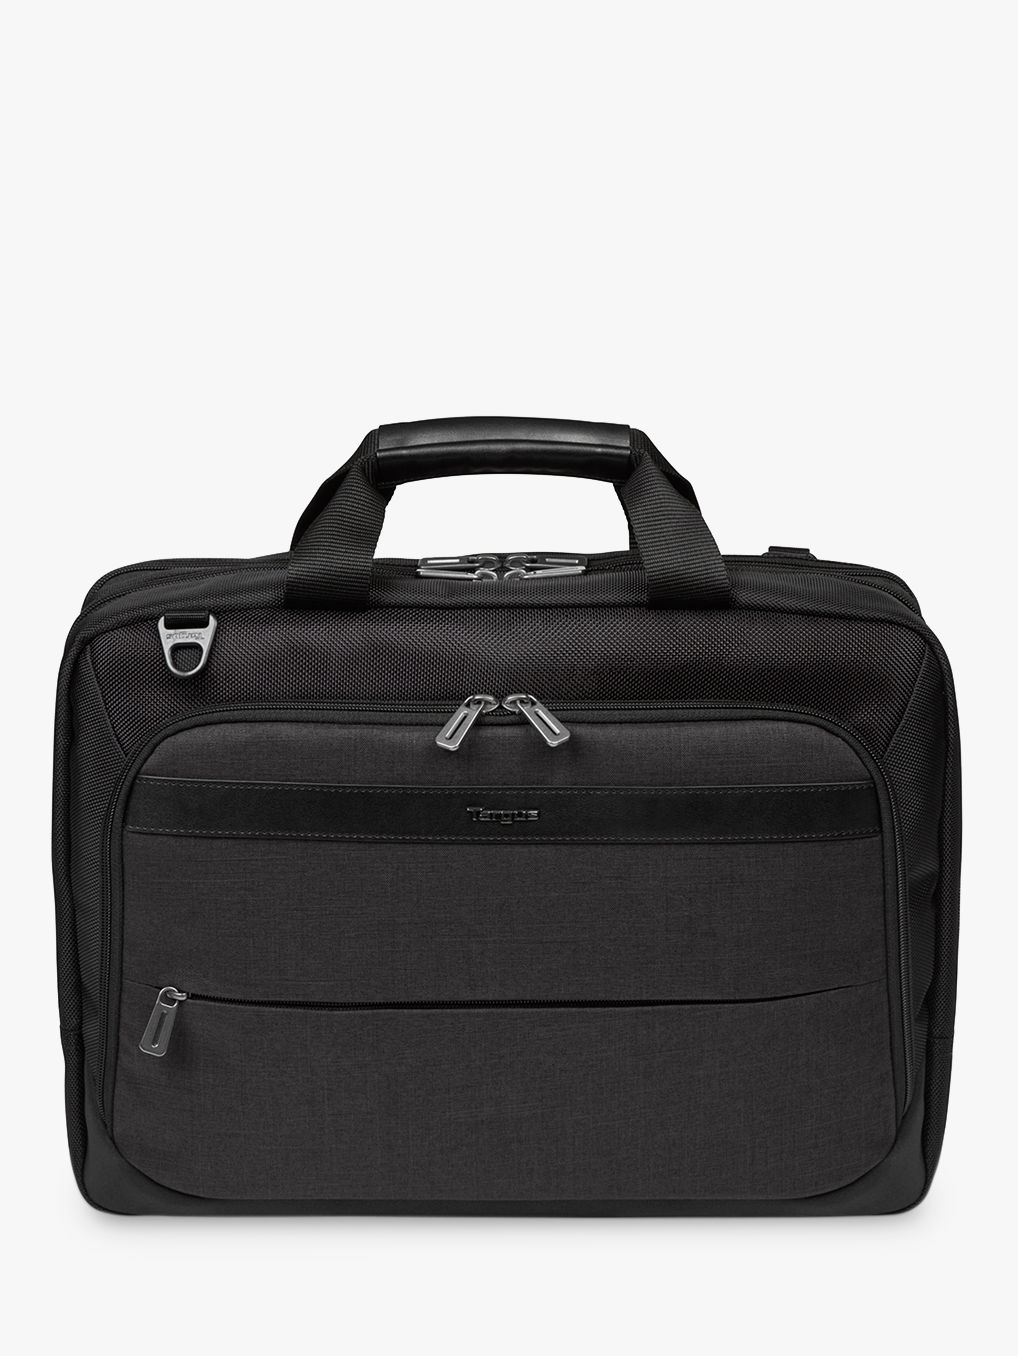 Targus Targus 15.6 High Capacity Topload Laptop Case, Black